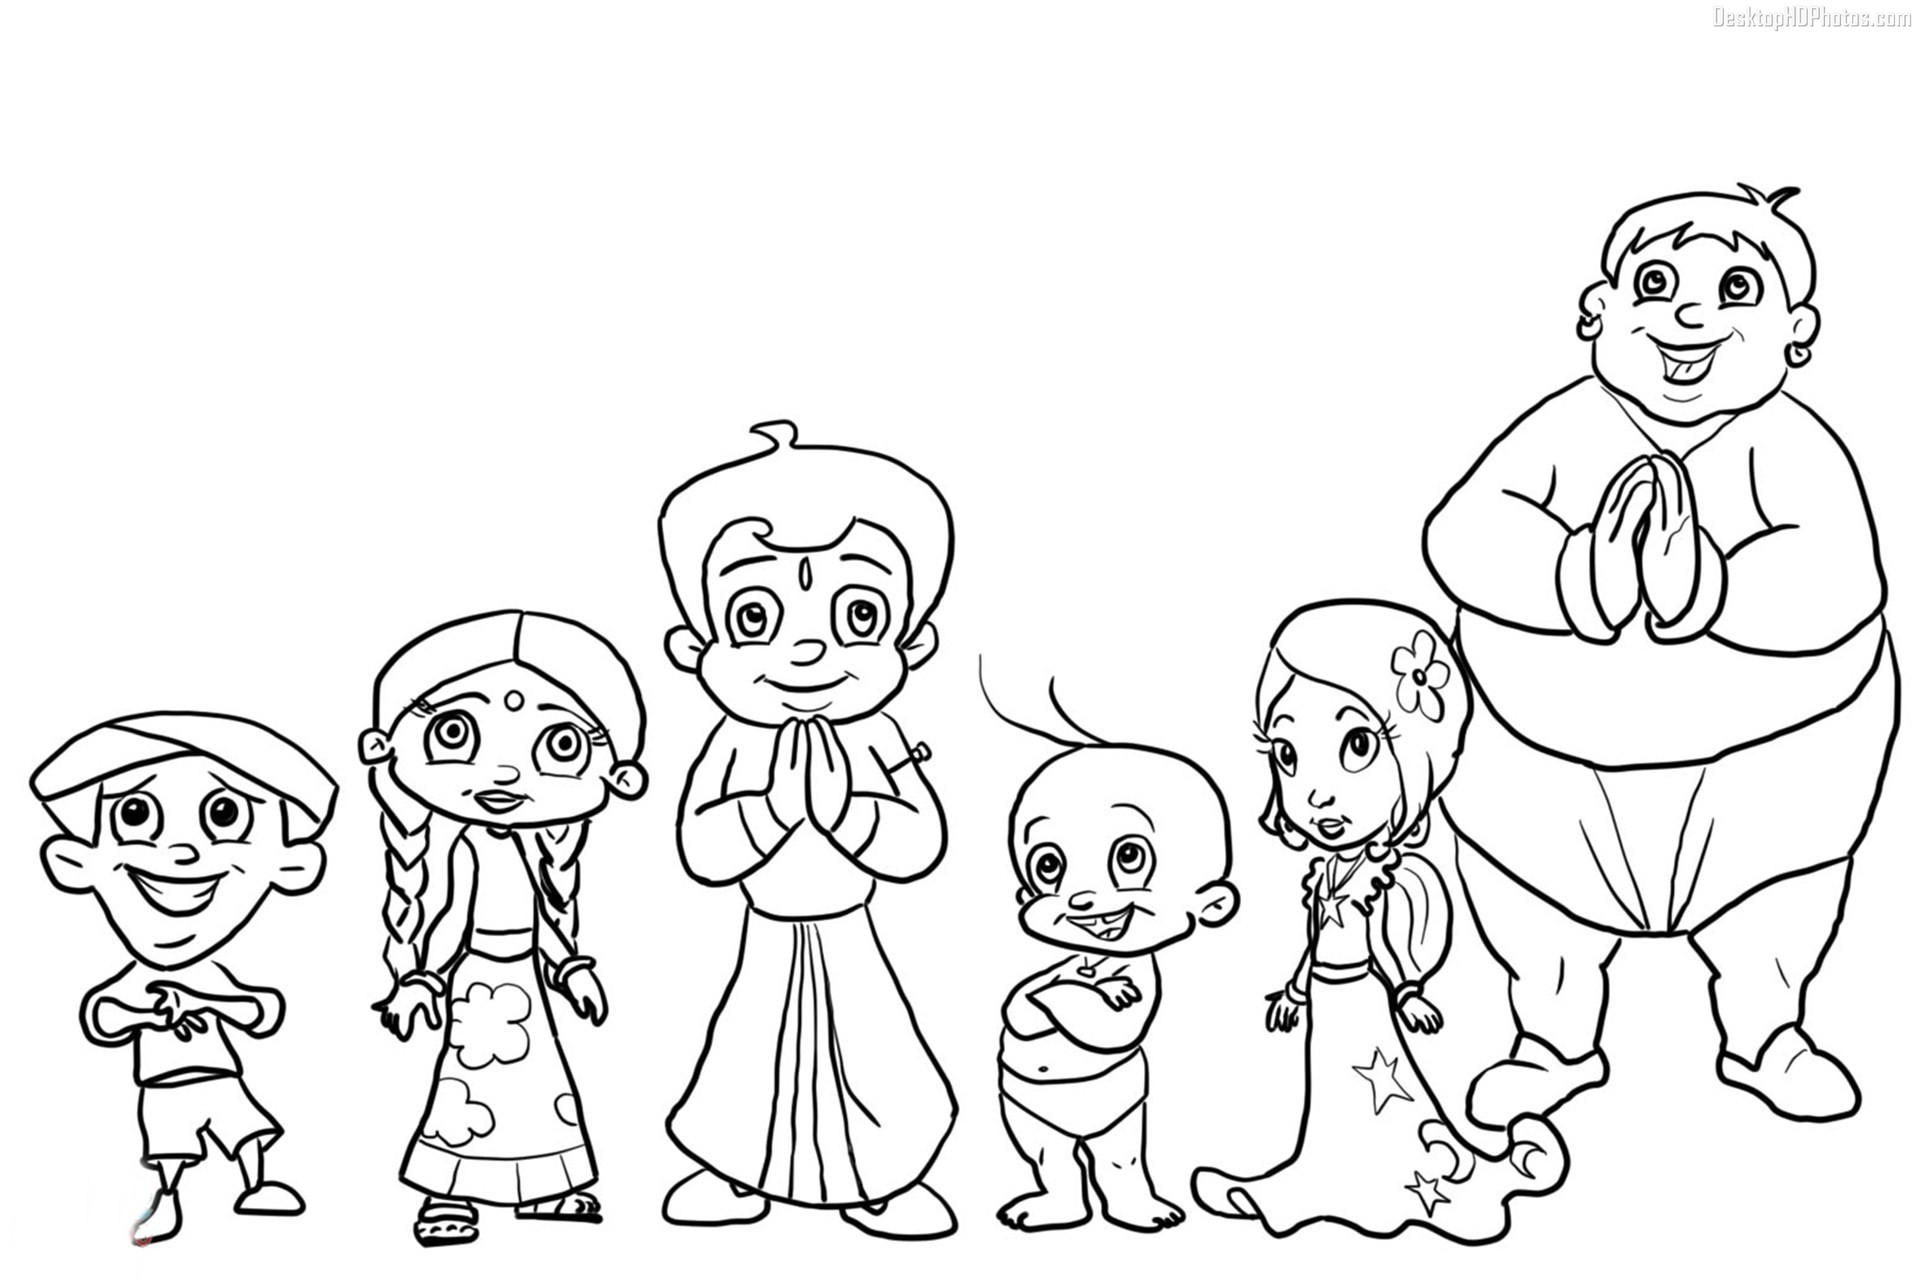 Chota Bheem Coloring Pages To Print Amp Sketch